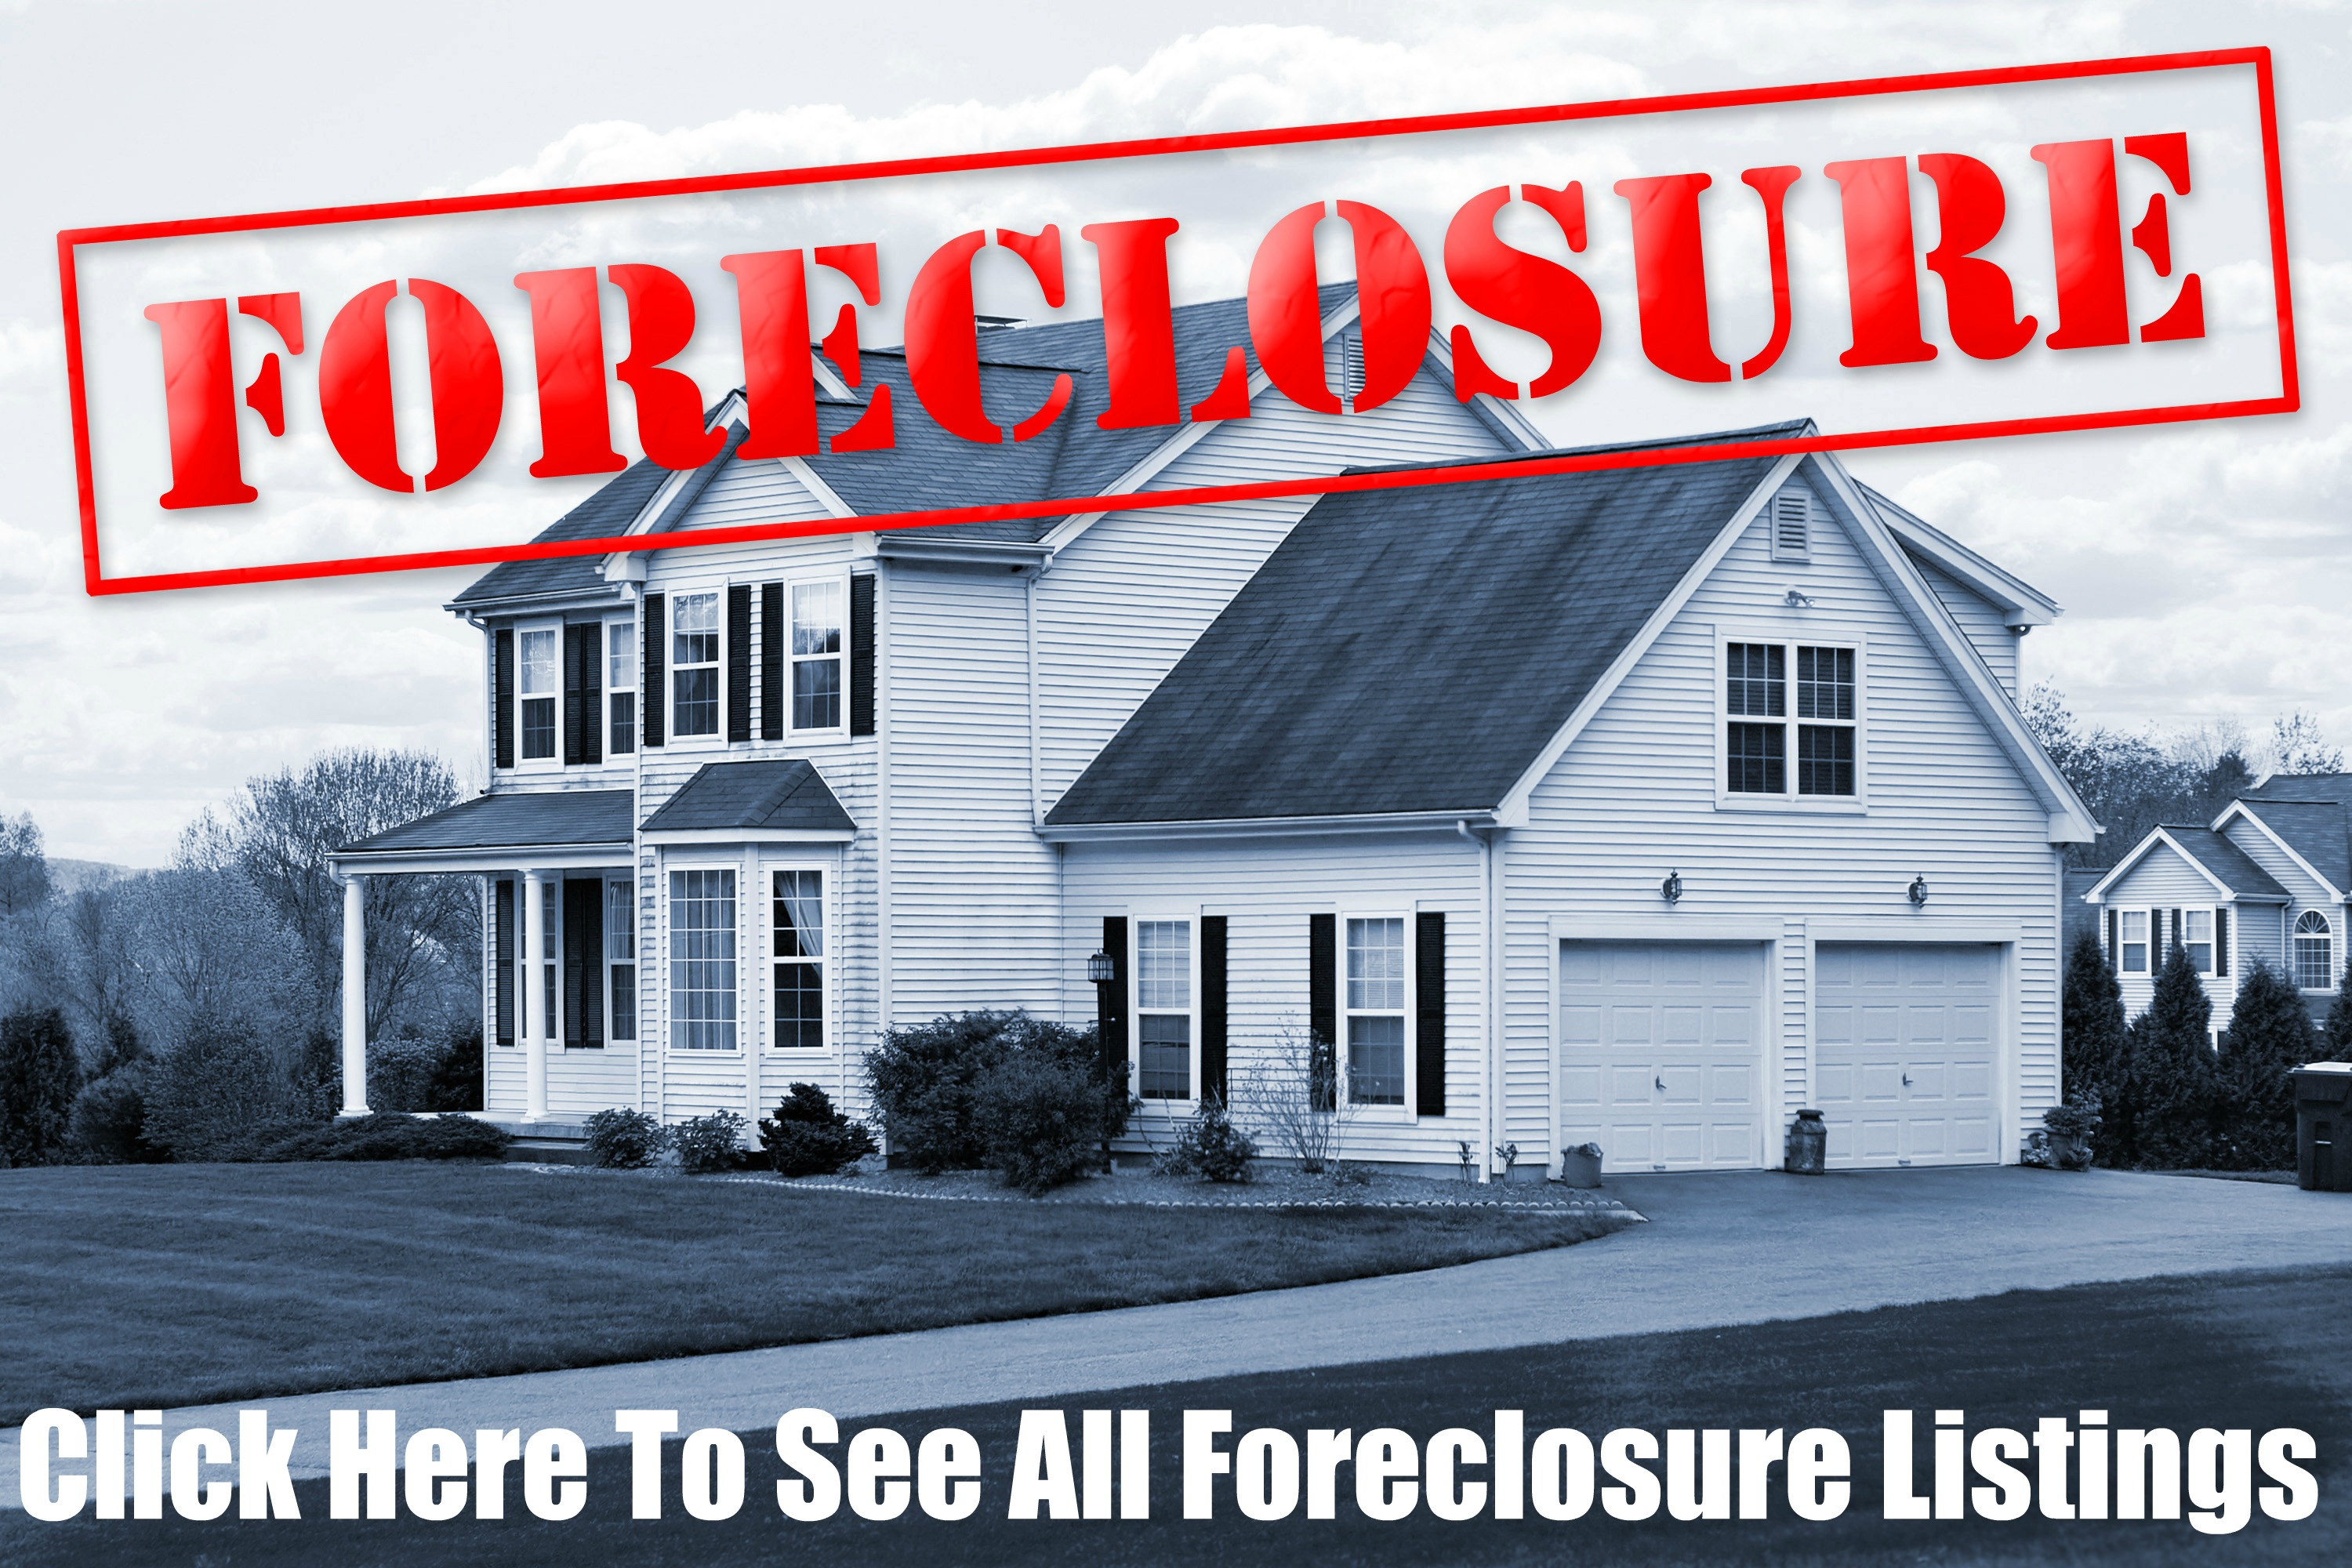 Foreclosure homes for sale Queens, Brooklyn, Nassau, Suffolk County